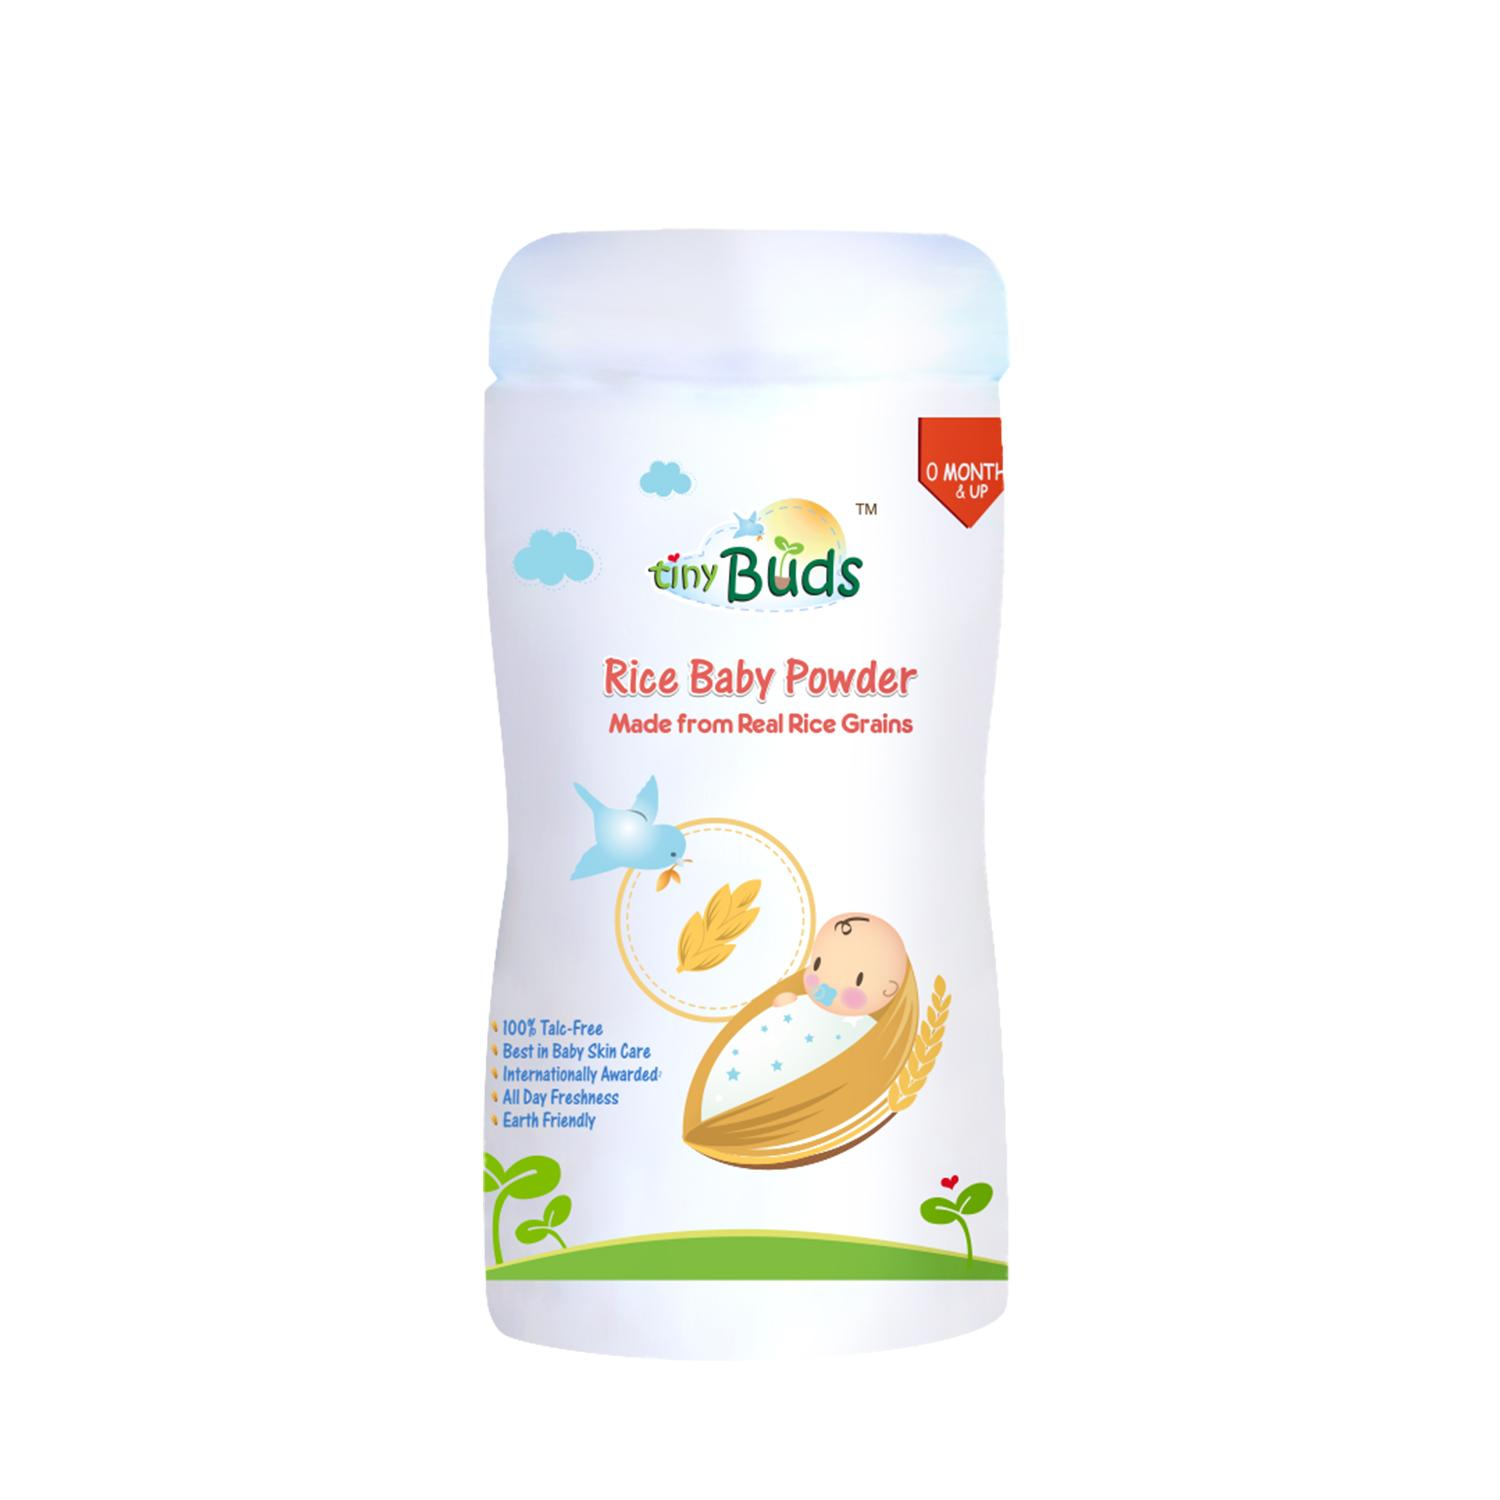 Baby Powder For Sale Talcum Online Brands Prices Zwitsal Classic Fresh Floral 500gr Twin Pack Tiny Buds Rice Non Talc